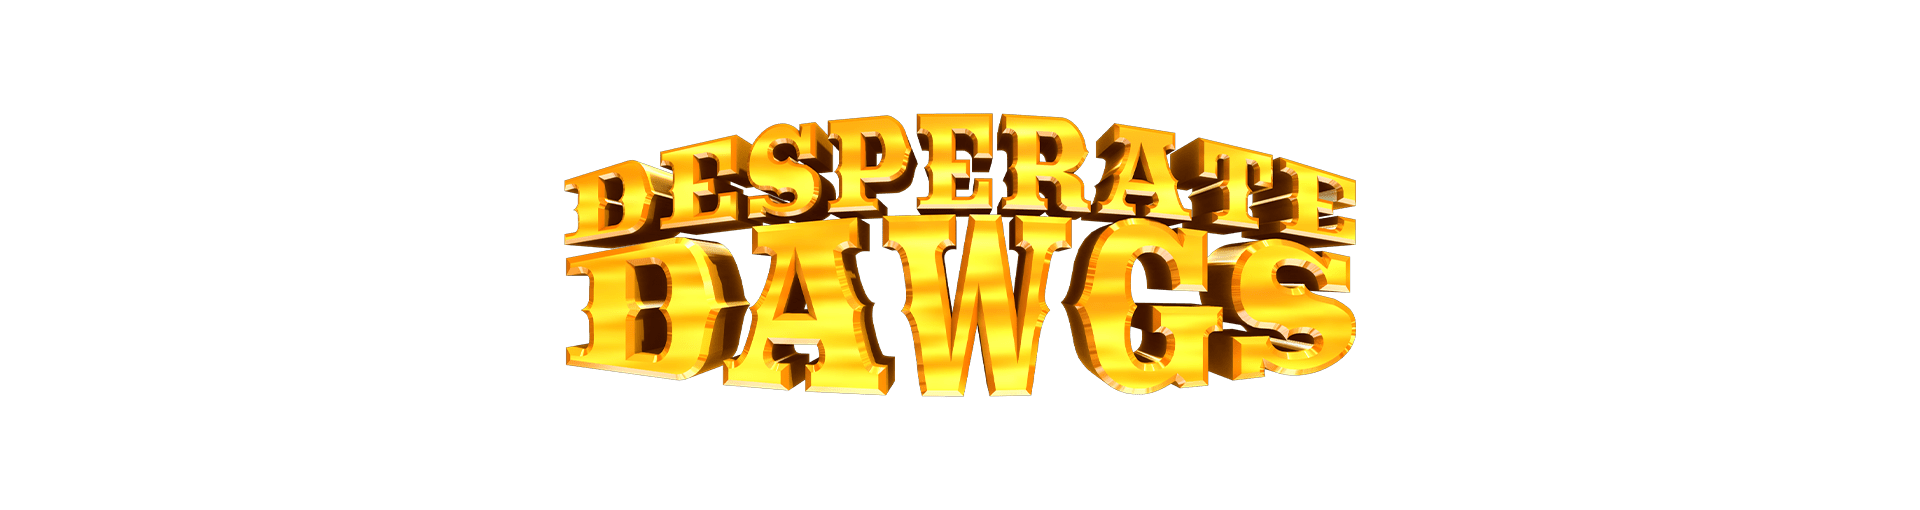 desperate_dawgs_Yggdrasil-UpcomingGame-Logo-Template-1920x510px